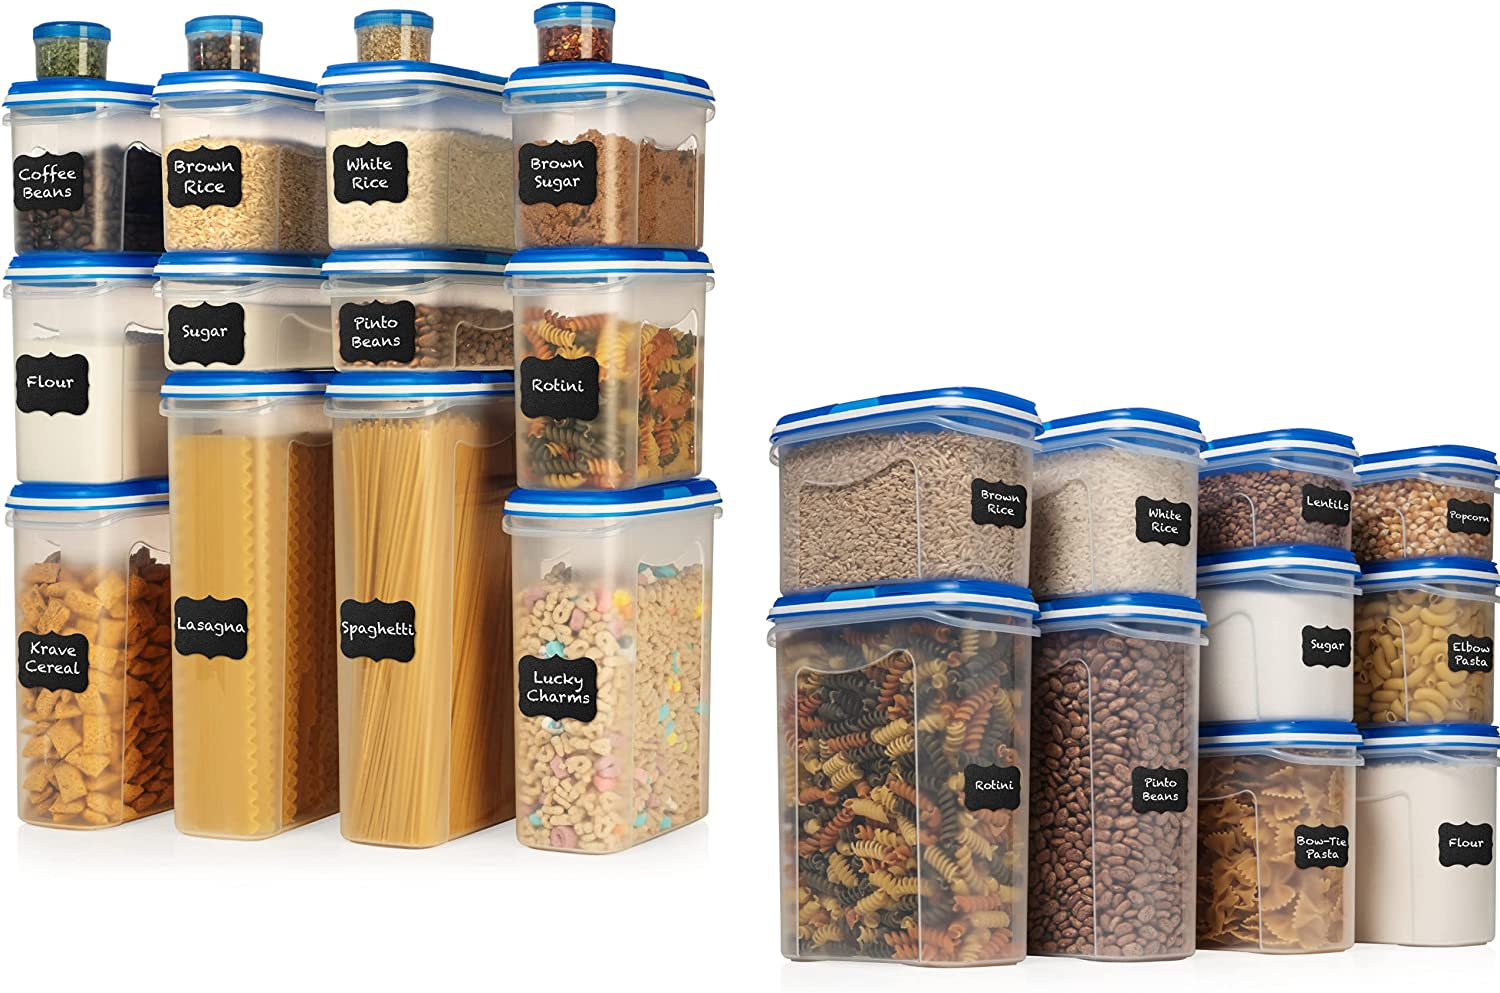 LARGE SET 32 pc + 20 pc Airtight Food Storage Containers with Lids (26 Container Set) Airtight Plastic Dry Food Space Saver Boxes, One Lid Fits All - Stackable Freezer Refrigerator kitchen Storage Con